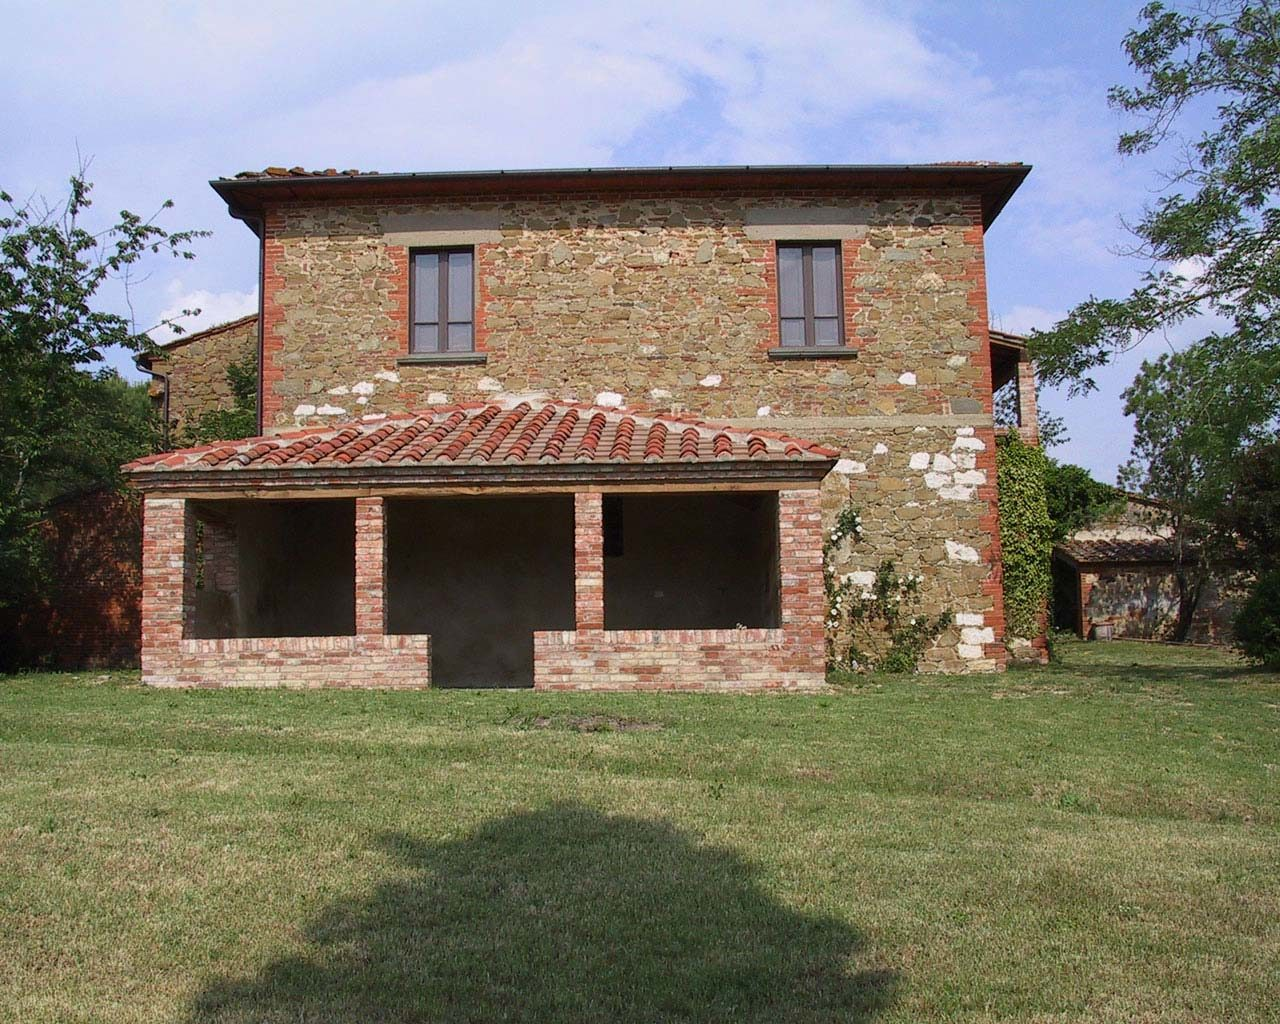 Country House, Siena, Italy